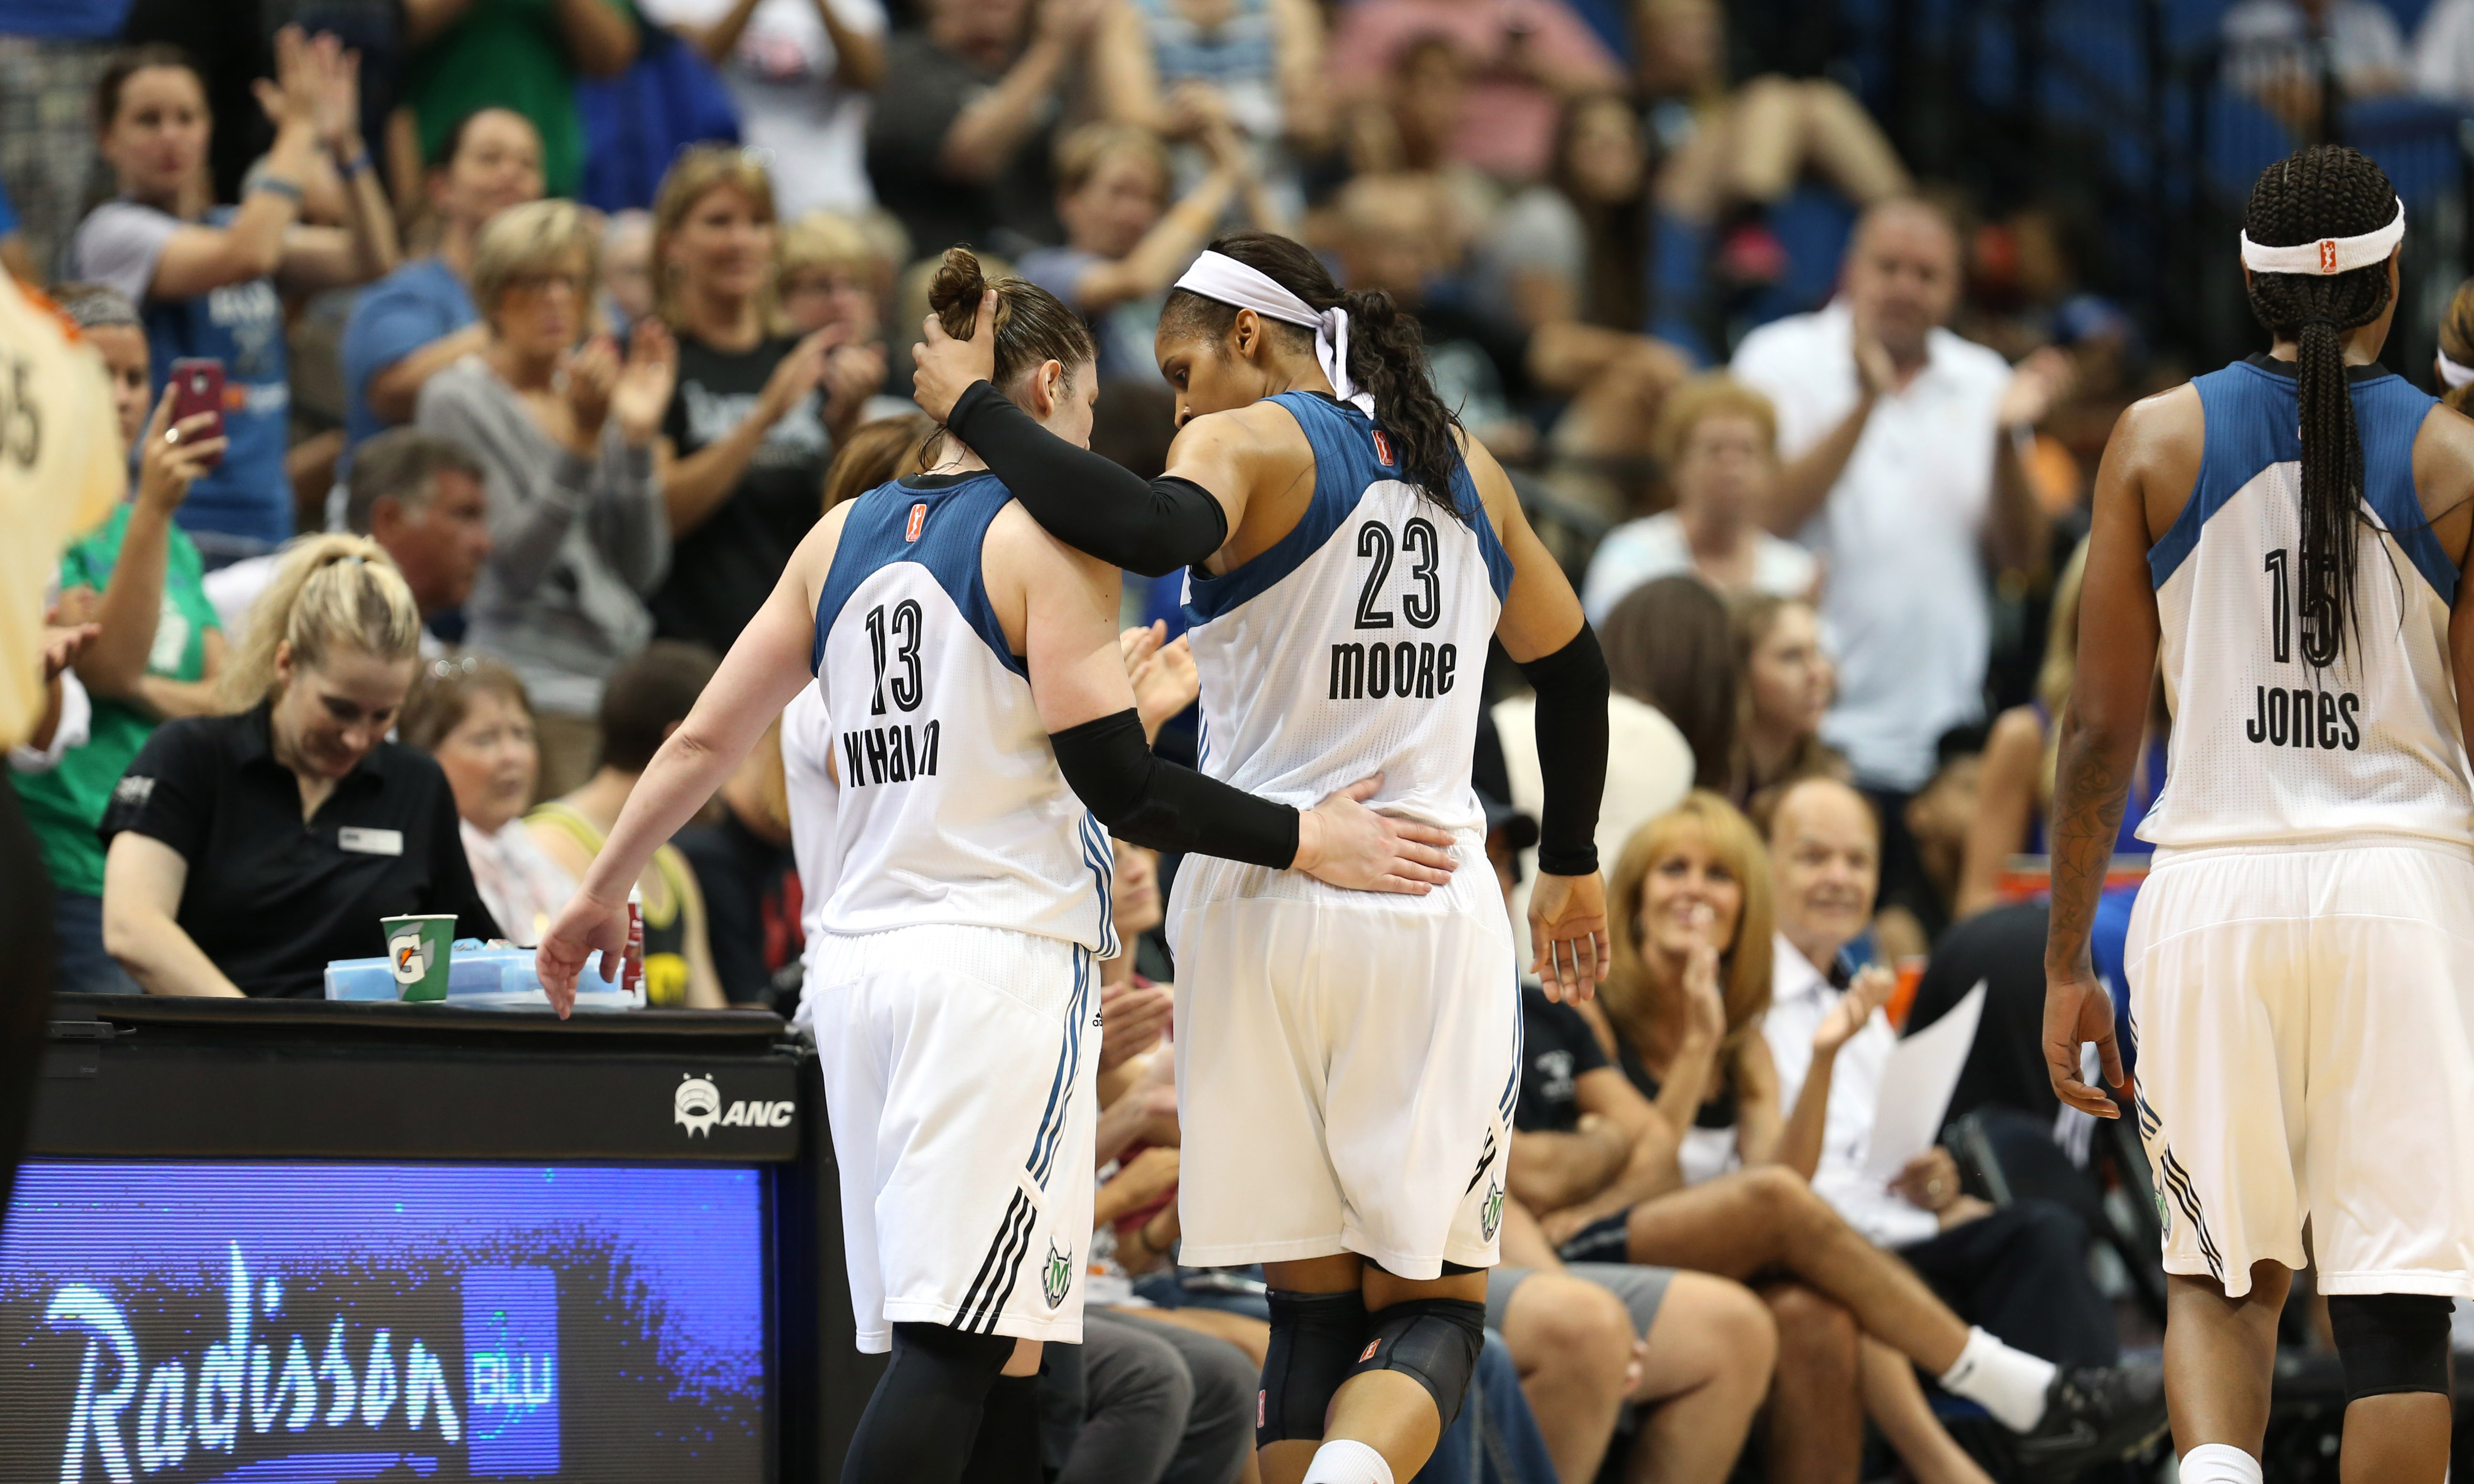 The Lynx were all smiles as they won their third-straight game and put an end to the Sky's four-game winning streak, beating Chicago 84-66.